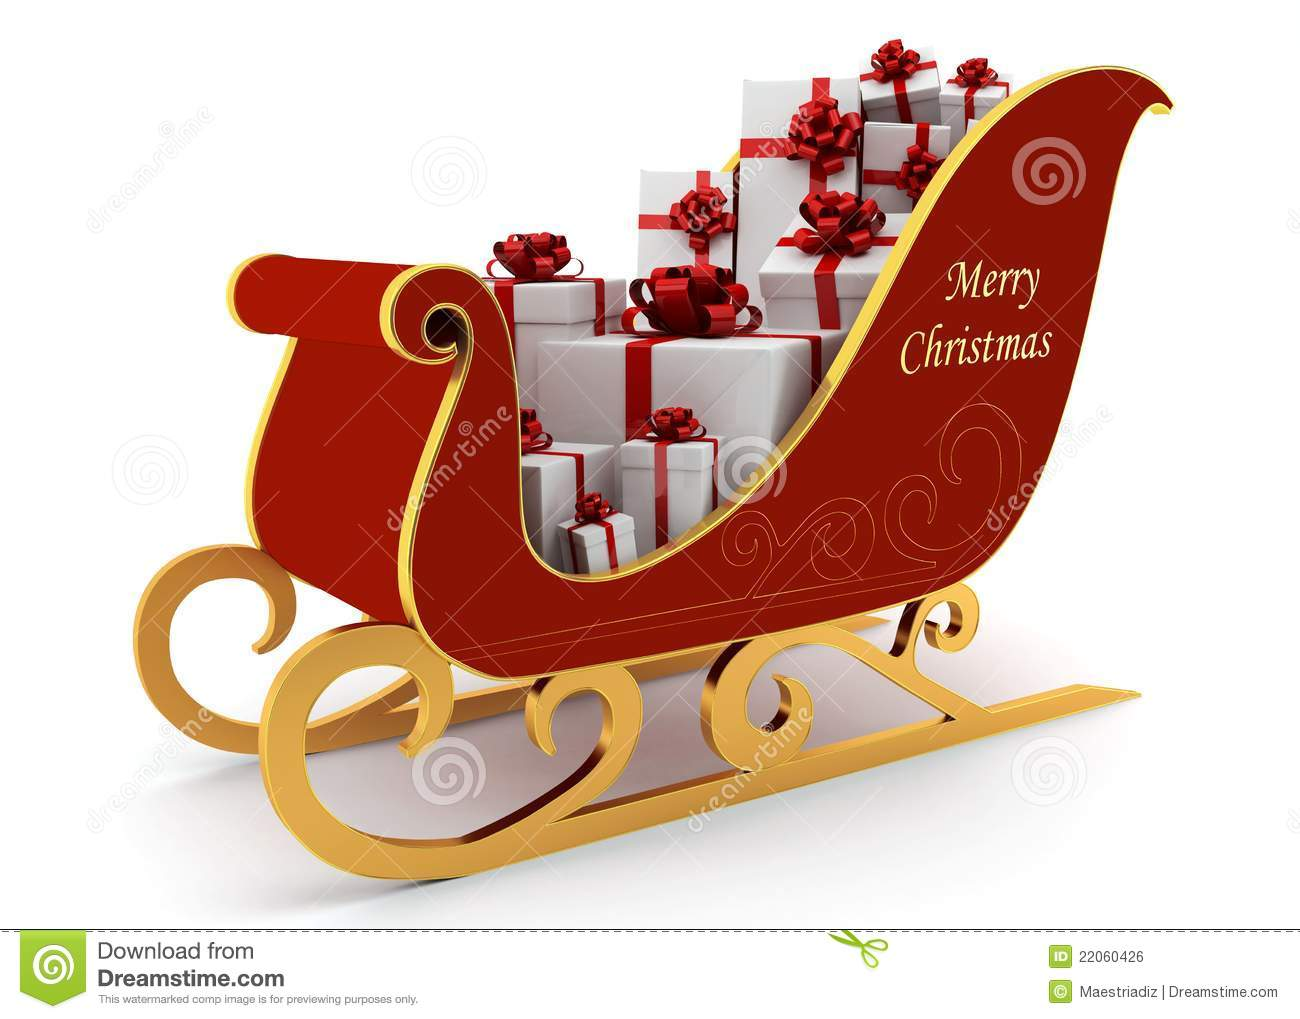 Christmas Sleigh With White Presents Royalty Free Stock Image - Image ...